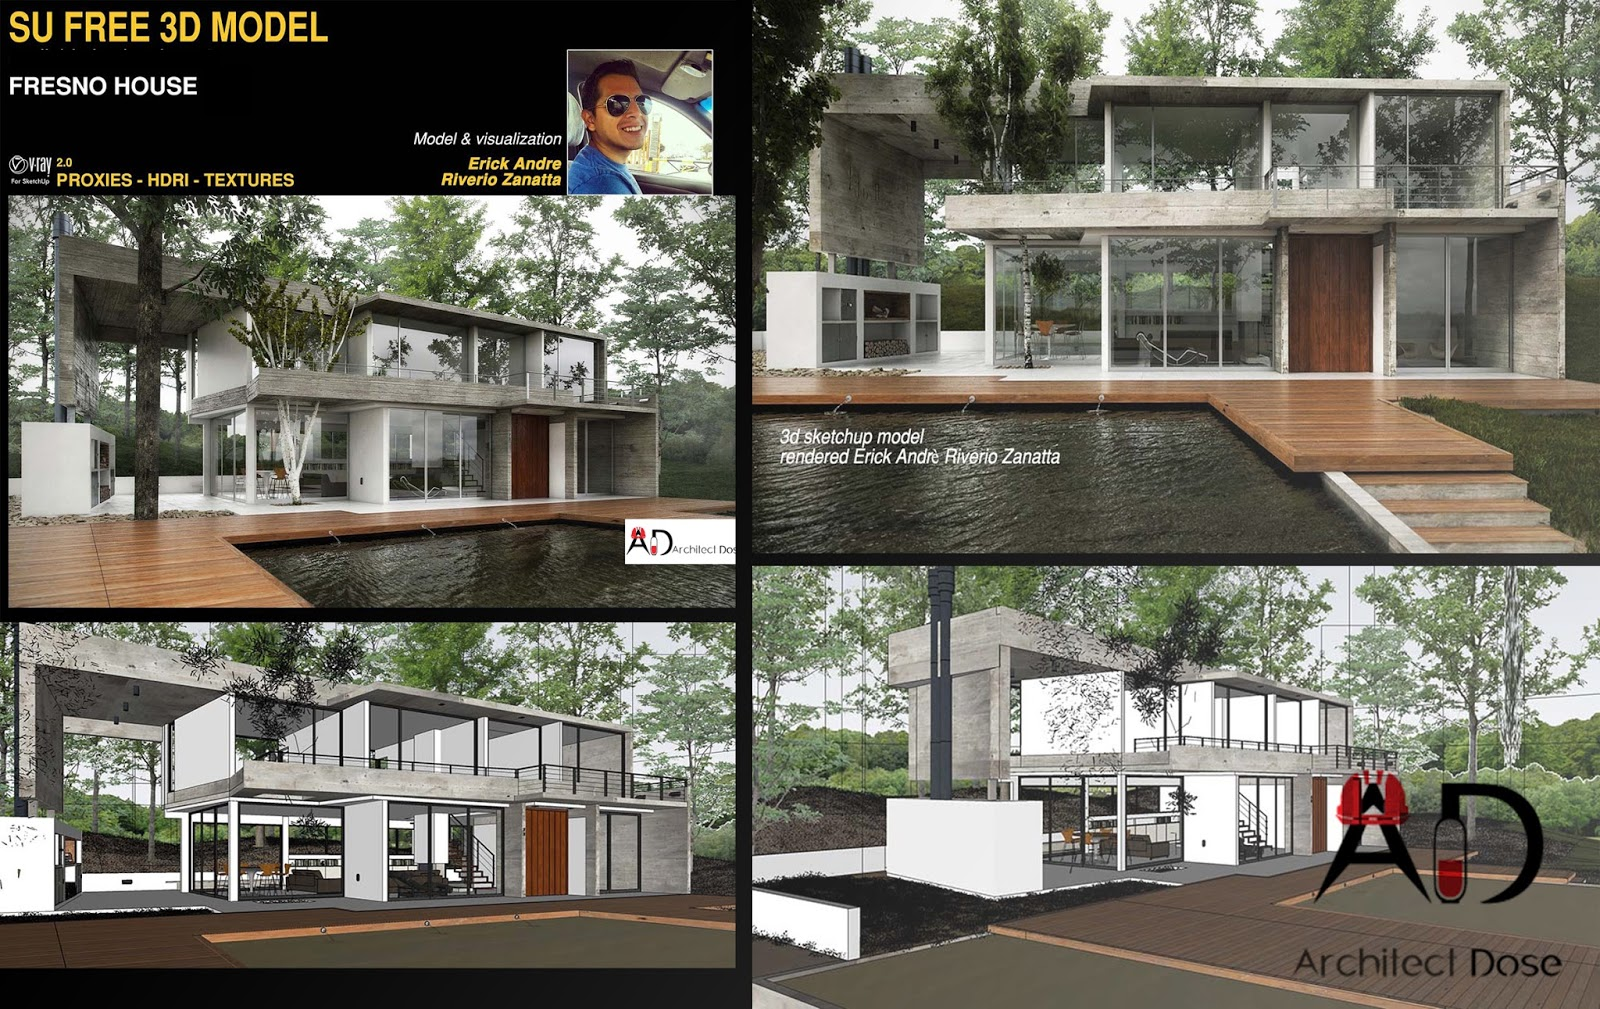 Home Architect Software Free Architect Dose Architecture Sketchup Tutorials Models